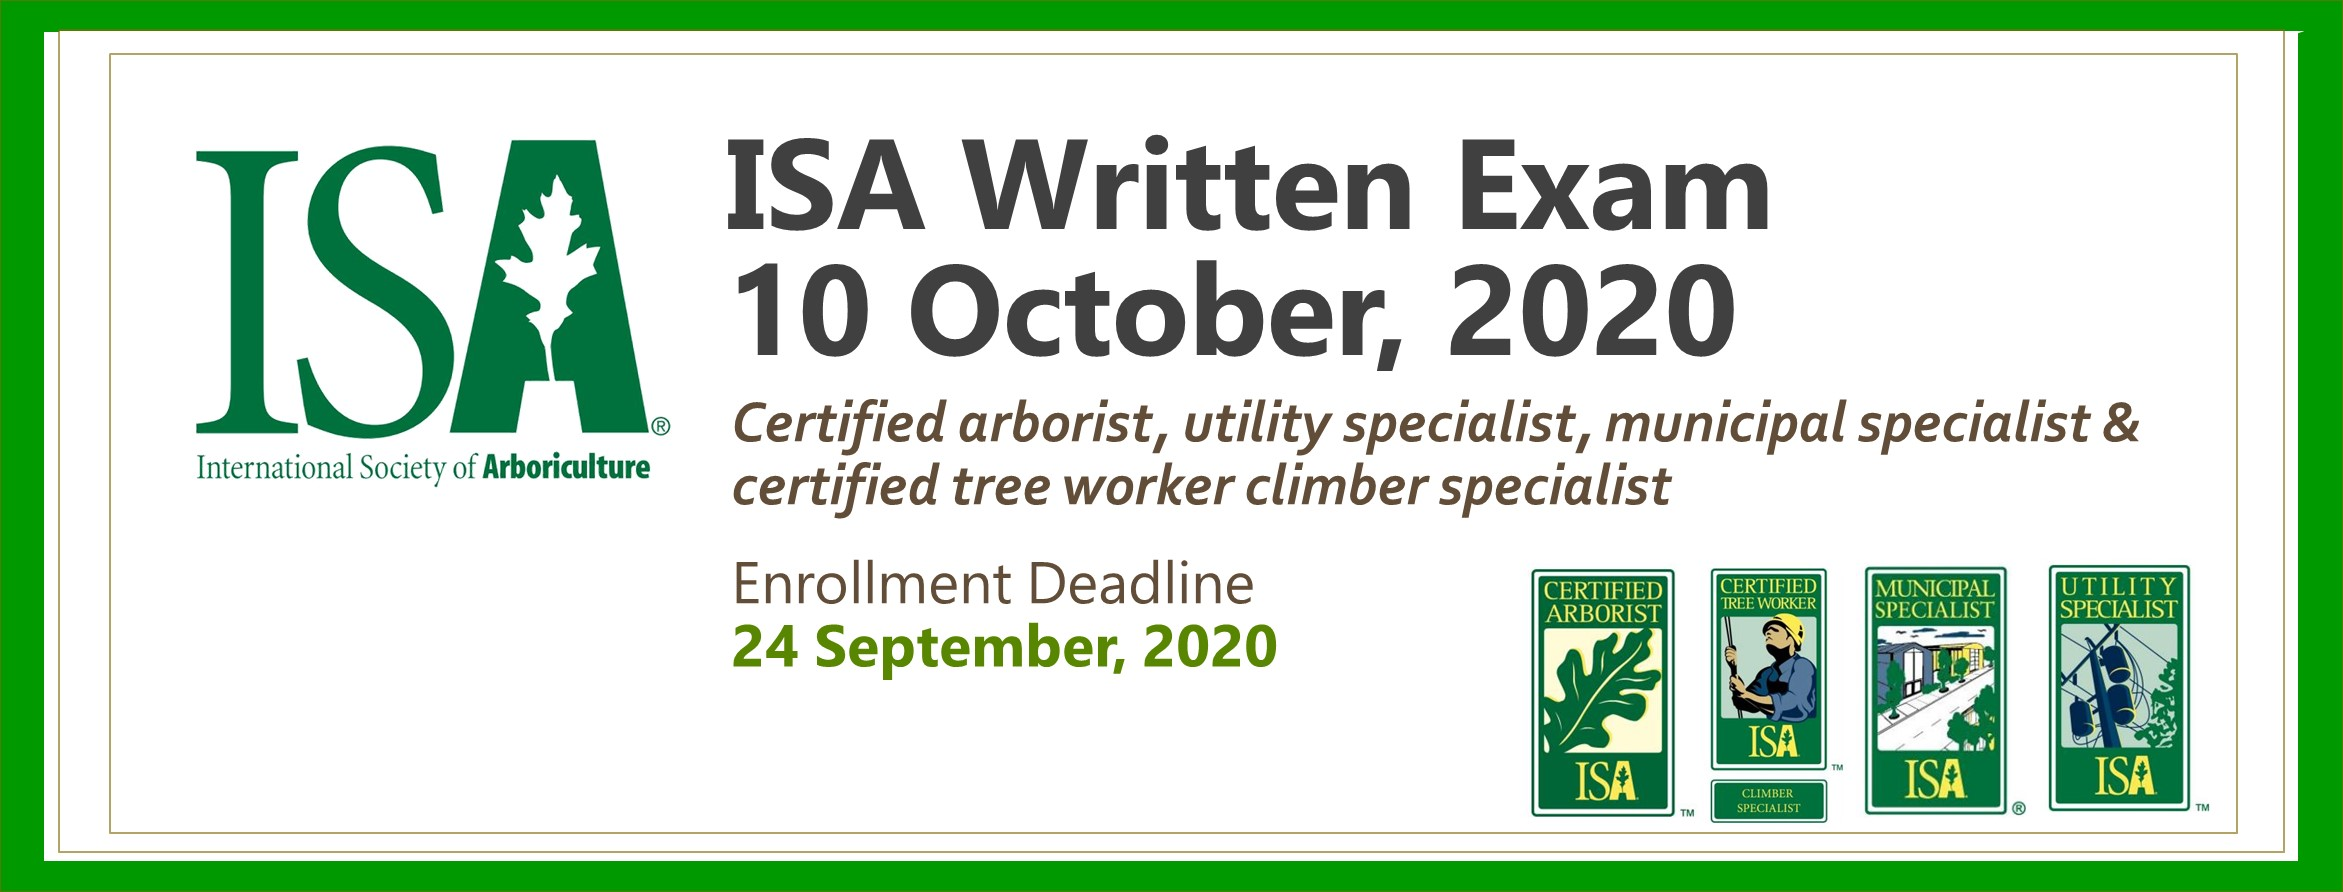 Written Exam 10 October 2020